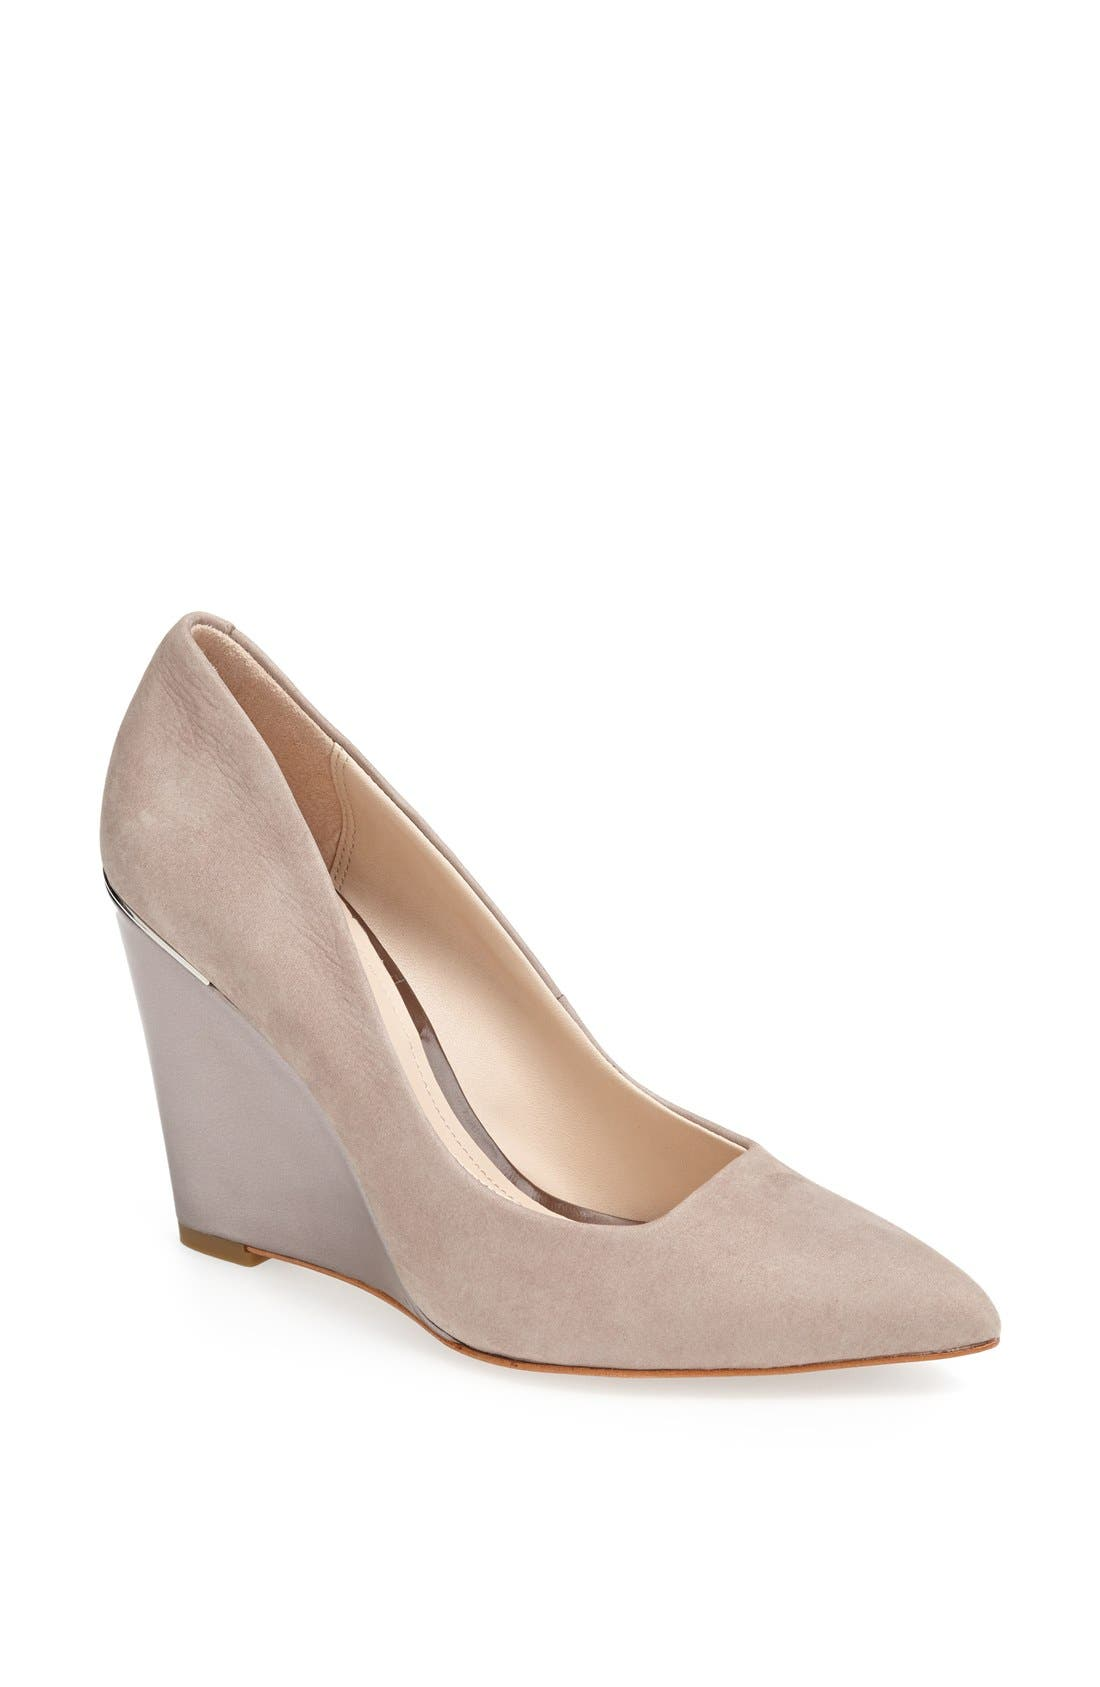 Main Image - COACH 'Orchard' Wedge Pump